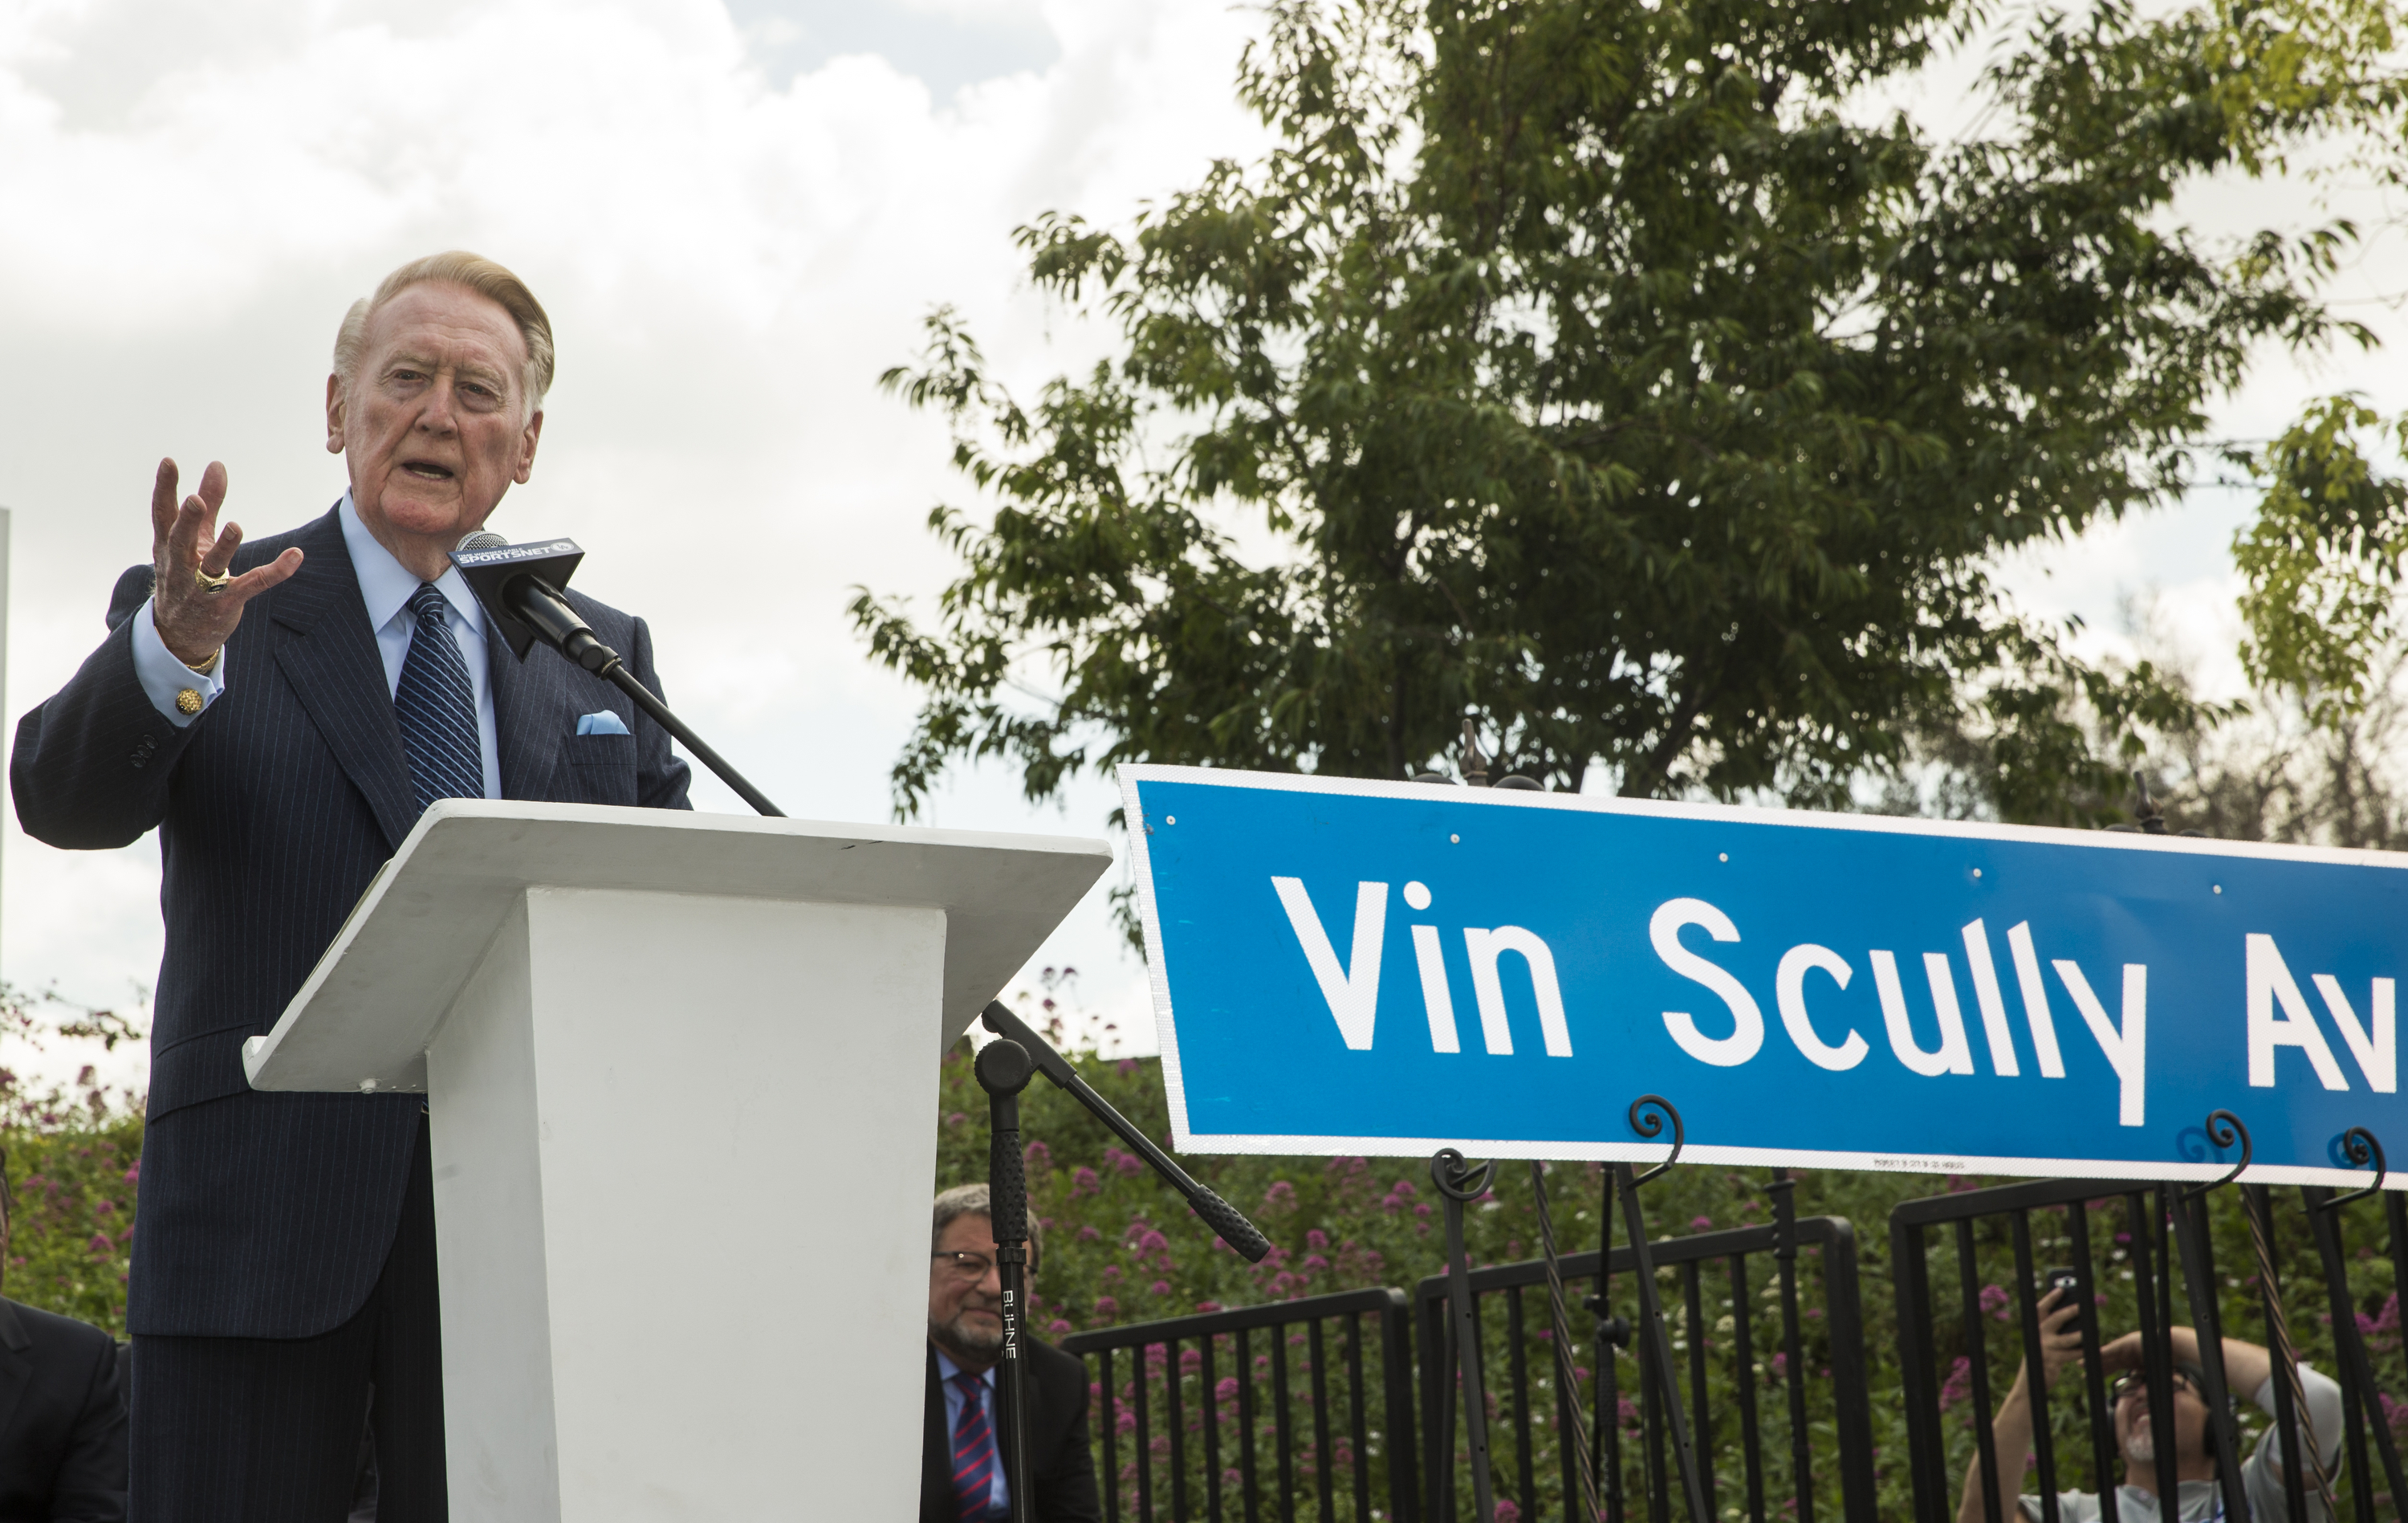 Dodger legend Vin Scully speaks at a dedication ceremony unveiling a street sign of his namesake at the entrance to Dodger Stadium in Los Angeles on Monday, April 11, 2016. Despite some opposition, the Los Angeles City Council on Friday officially renamed